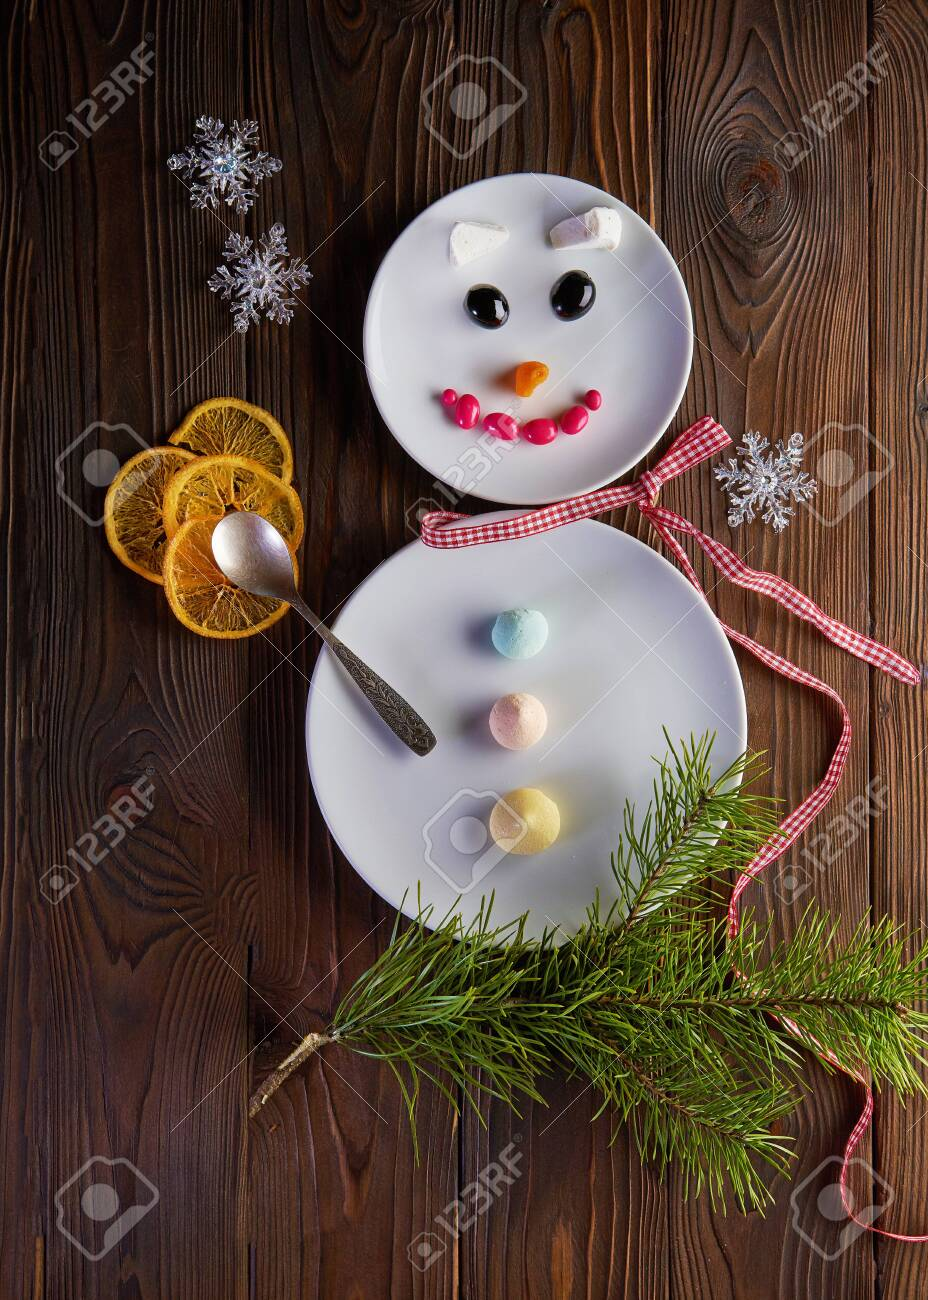 Funny snowman - Christmas and New Year fun food art. Top view - 131905226